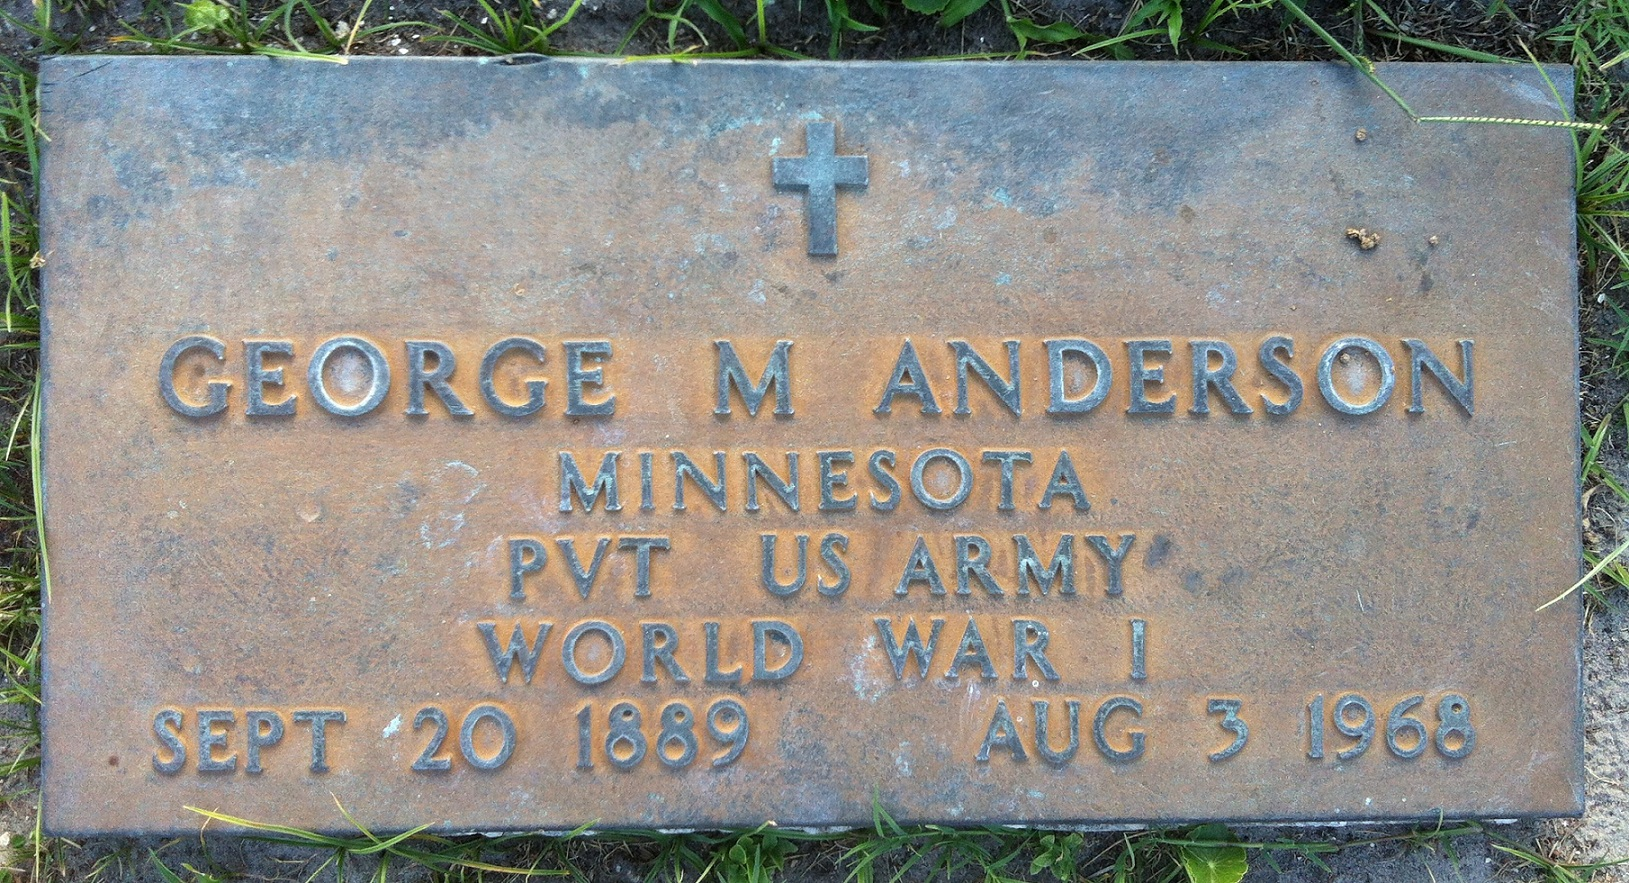 Pvt George M. Anderson